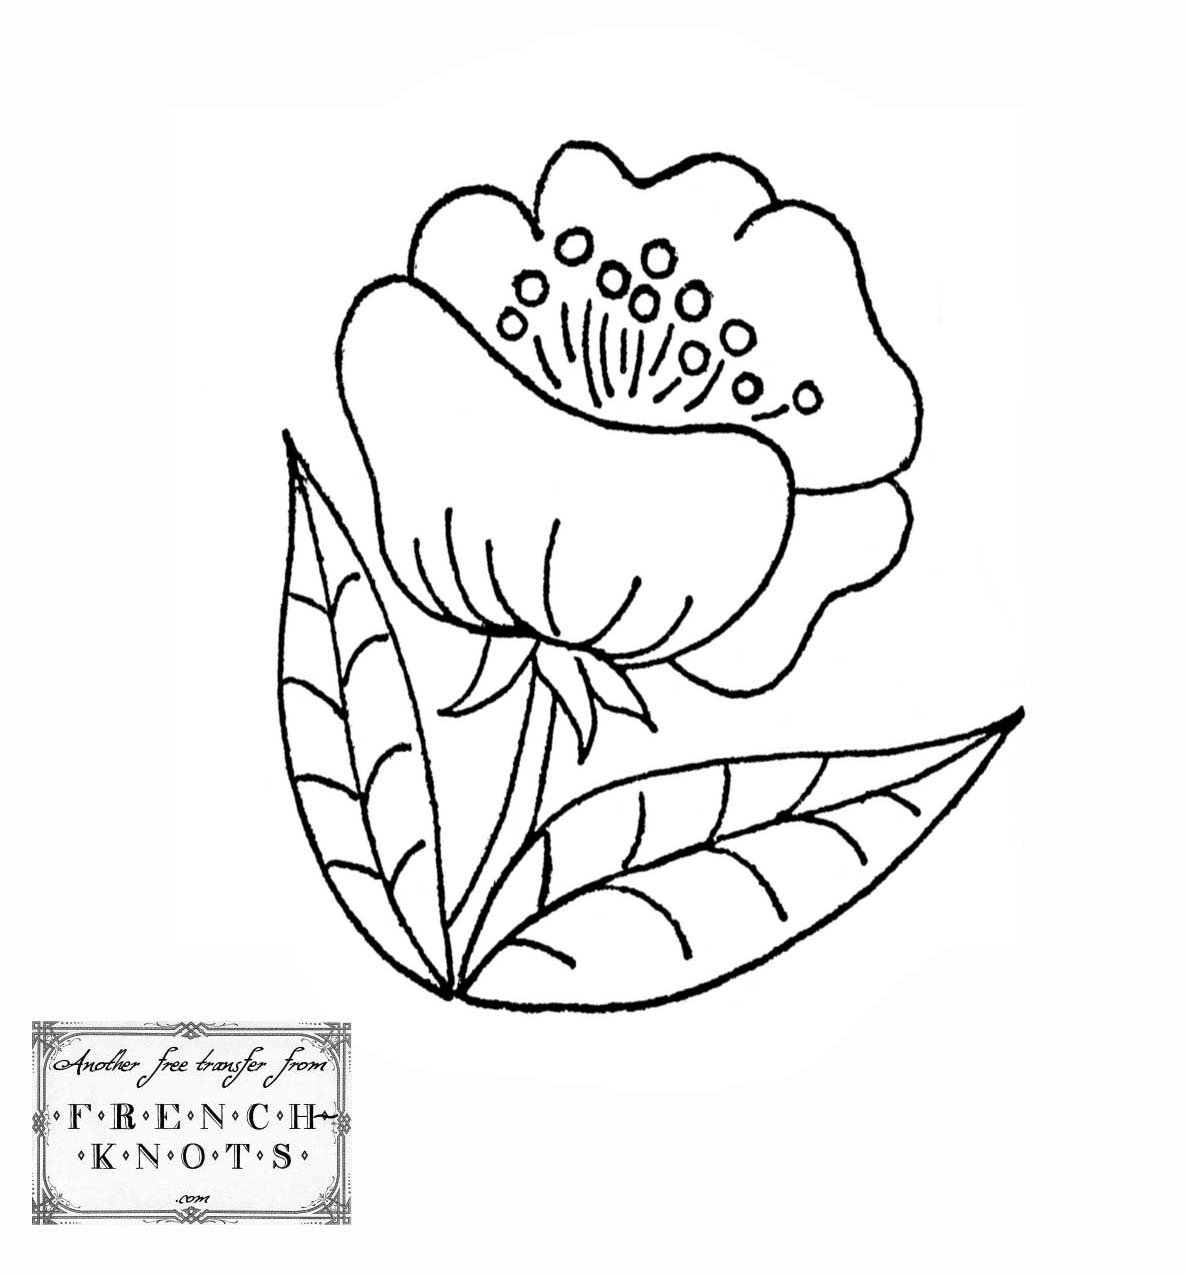 Sprigs – Embroidery Patterns